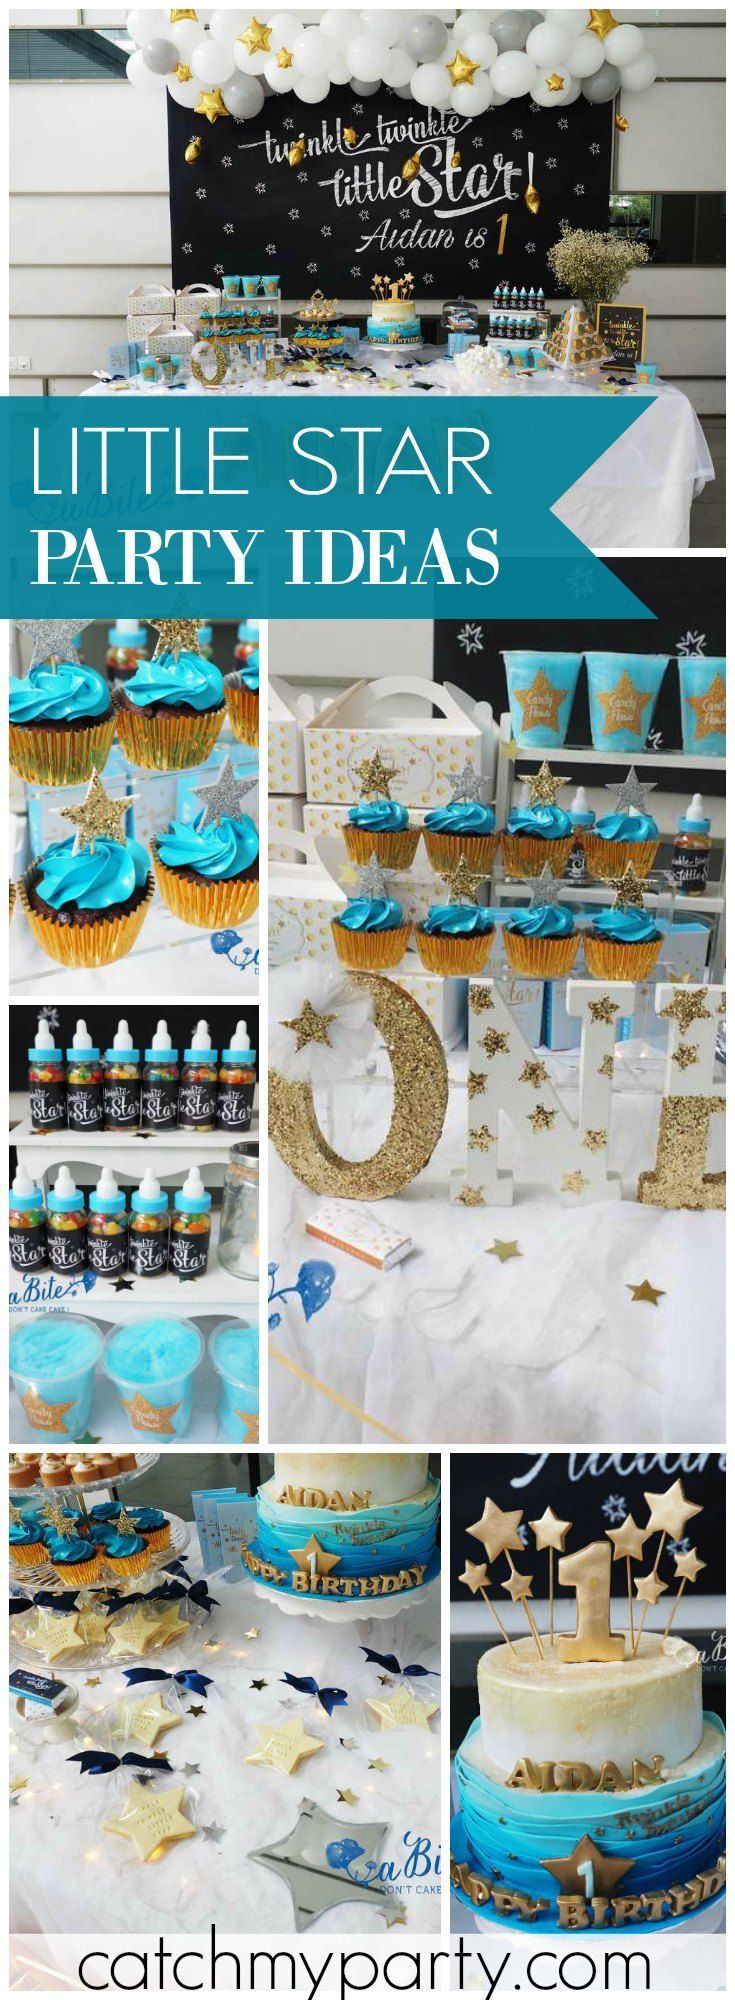 So many gorgeous ideas at this Twinkle Twinkle Little Star party! See more party ideas at Catchmyparty.com!